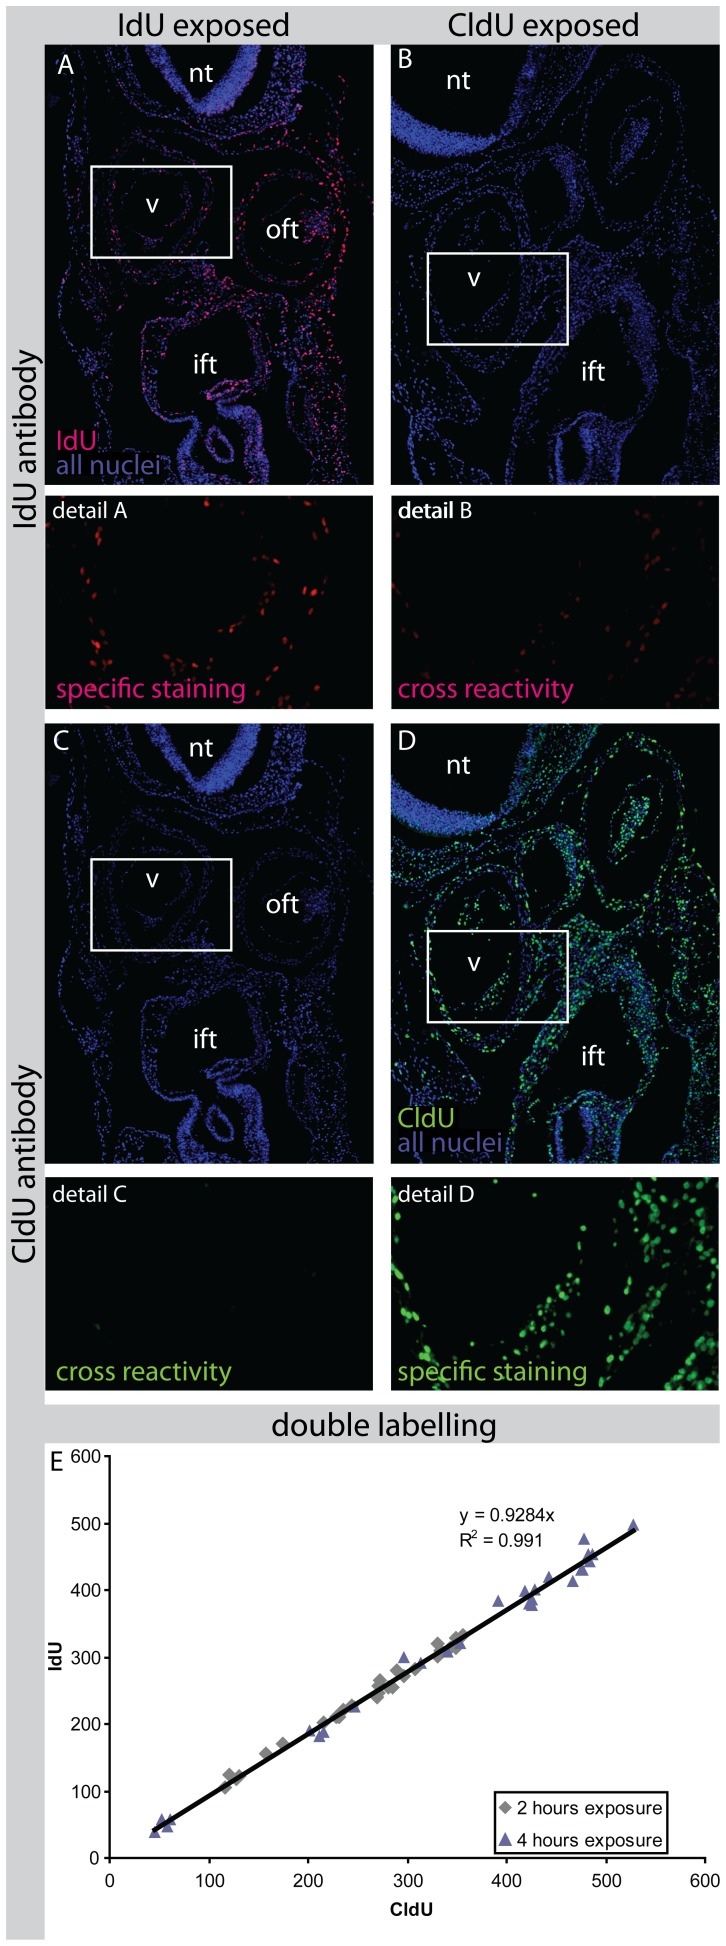 Cross-reactivity and validation of antibody staining. Section of an embryo exposed to IdU shows specific staining using an antibody against IdU (Panel A). When an antibody against CldU is used there is no aspecific staining visible (Panel C). When an embryo is exposed to CldU and an antibody agains IdU is used some cross reactivity is observed (Panel B). Panel D shows specific staining for CldU. Abbreviations: ift: Inflow Tract; nt: Neural Tubel; oft: Outflow Tract; v: Ventricle. Panel E shows the relation between the number of nuclei labelled for IdU and for CldU at equal exposure times. Each point represents a section. There was no significant difference between 2 and 4 hours of exposure time. The linear relation shows a high correlation coefficient (R 2 = 0.991) and detection of 7.2% less IdU than CldU positive nuclei.